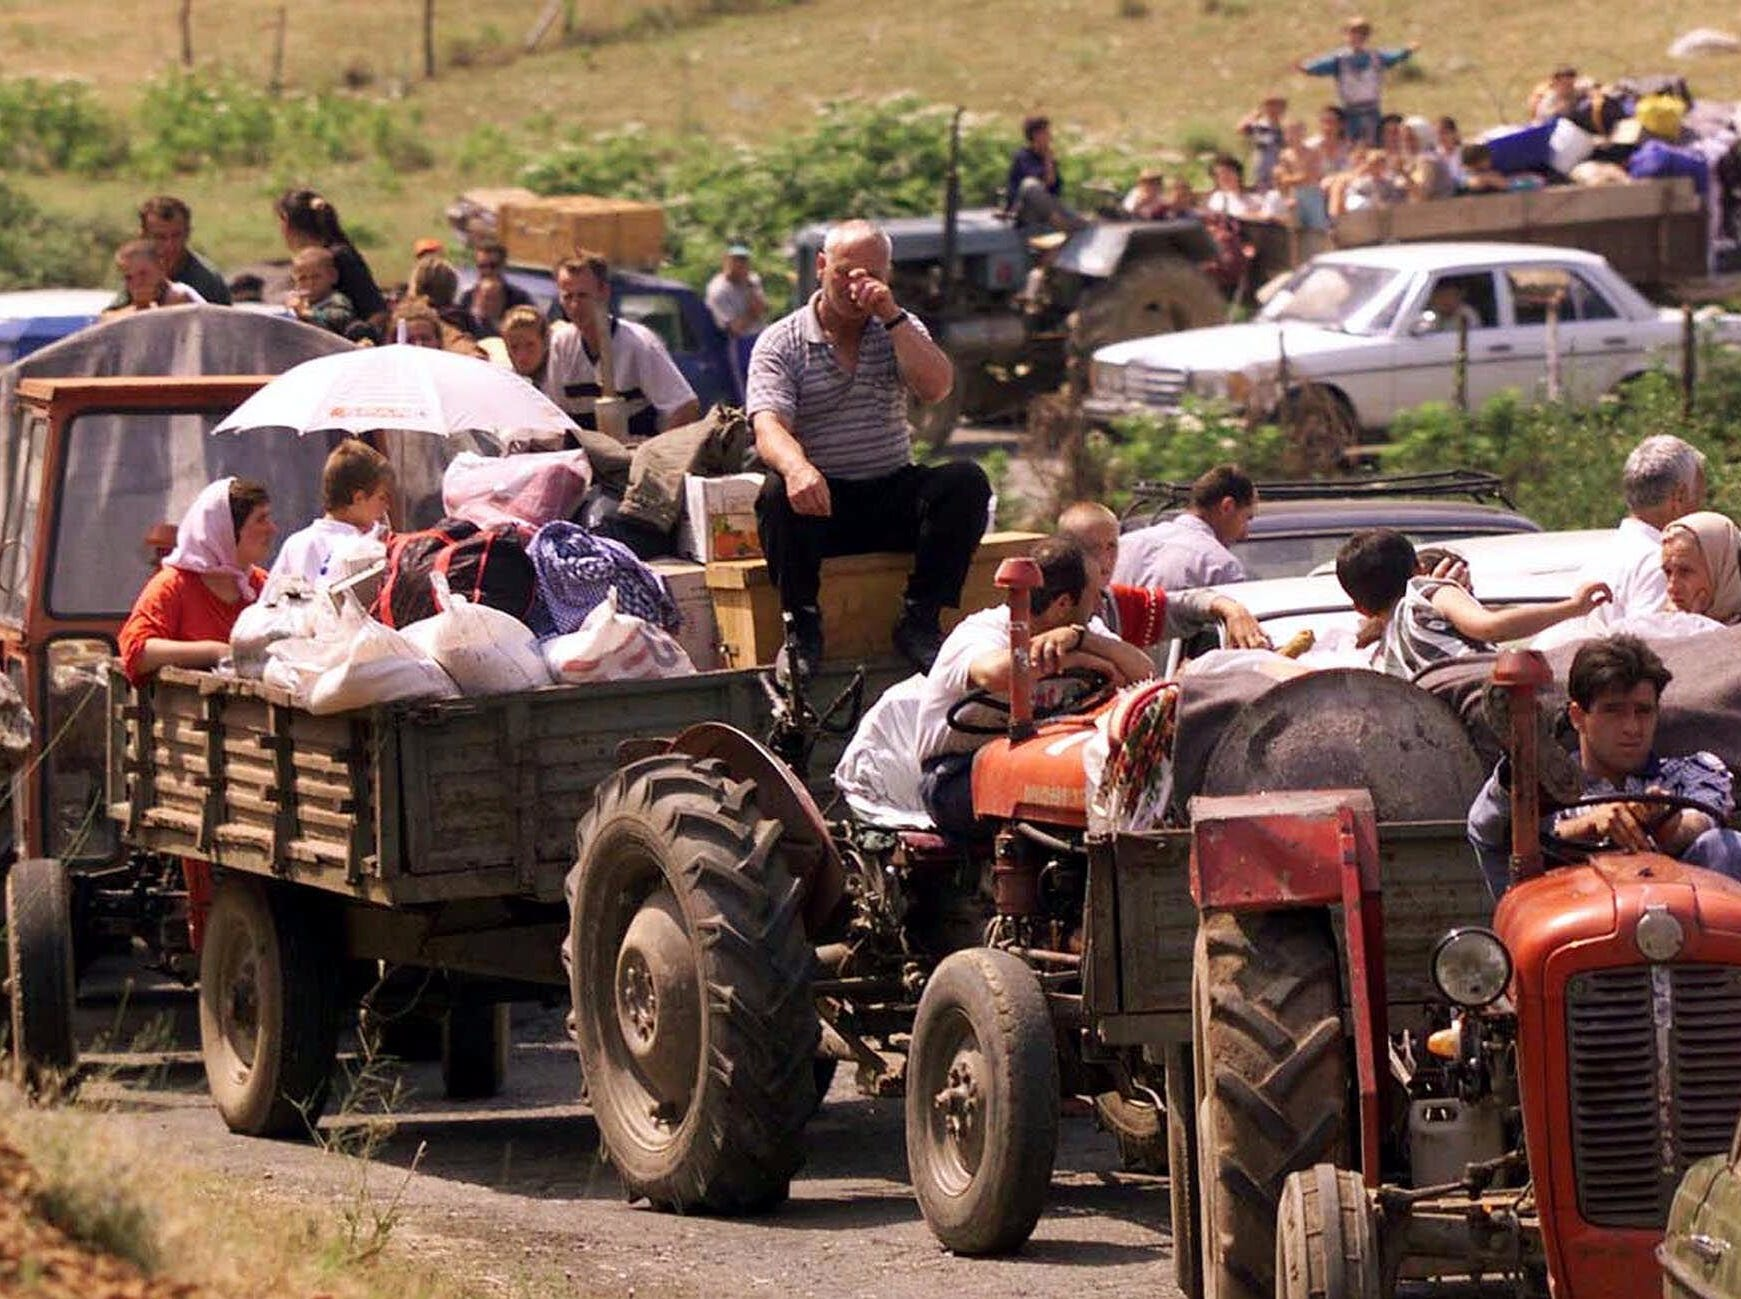 Thousands of refugees, backed up for miles, make their way into Kosovo near the border crossing at Morini, Albania, Wednesday, June 16, 1999, despite warnings of minefields and little food.